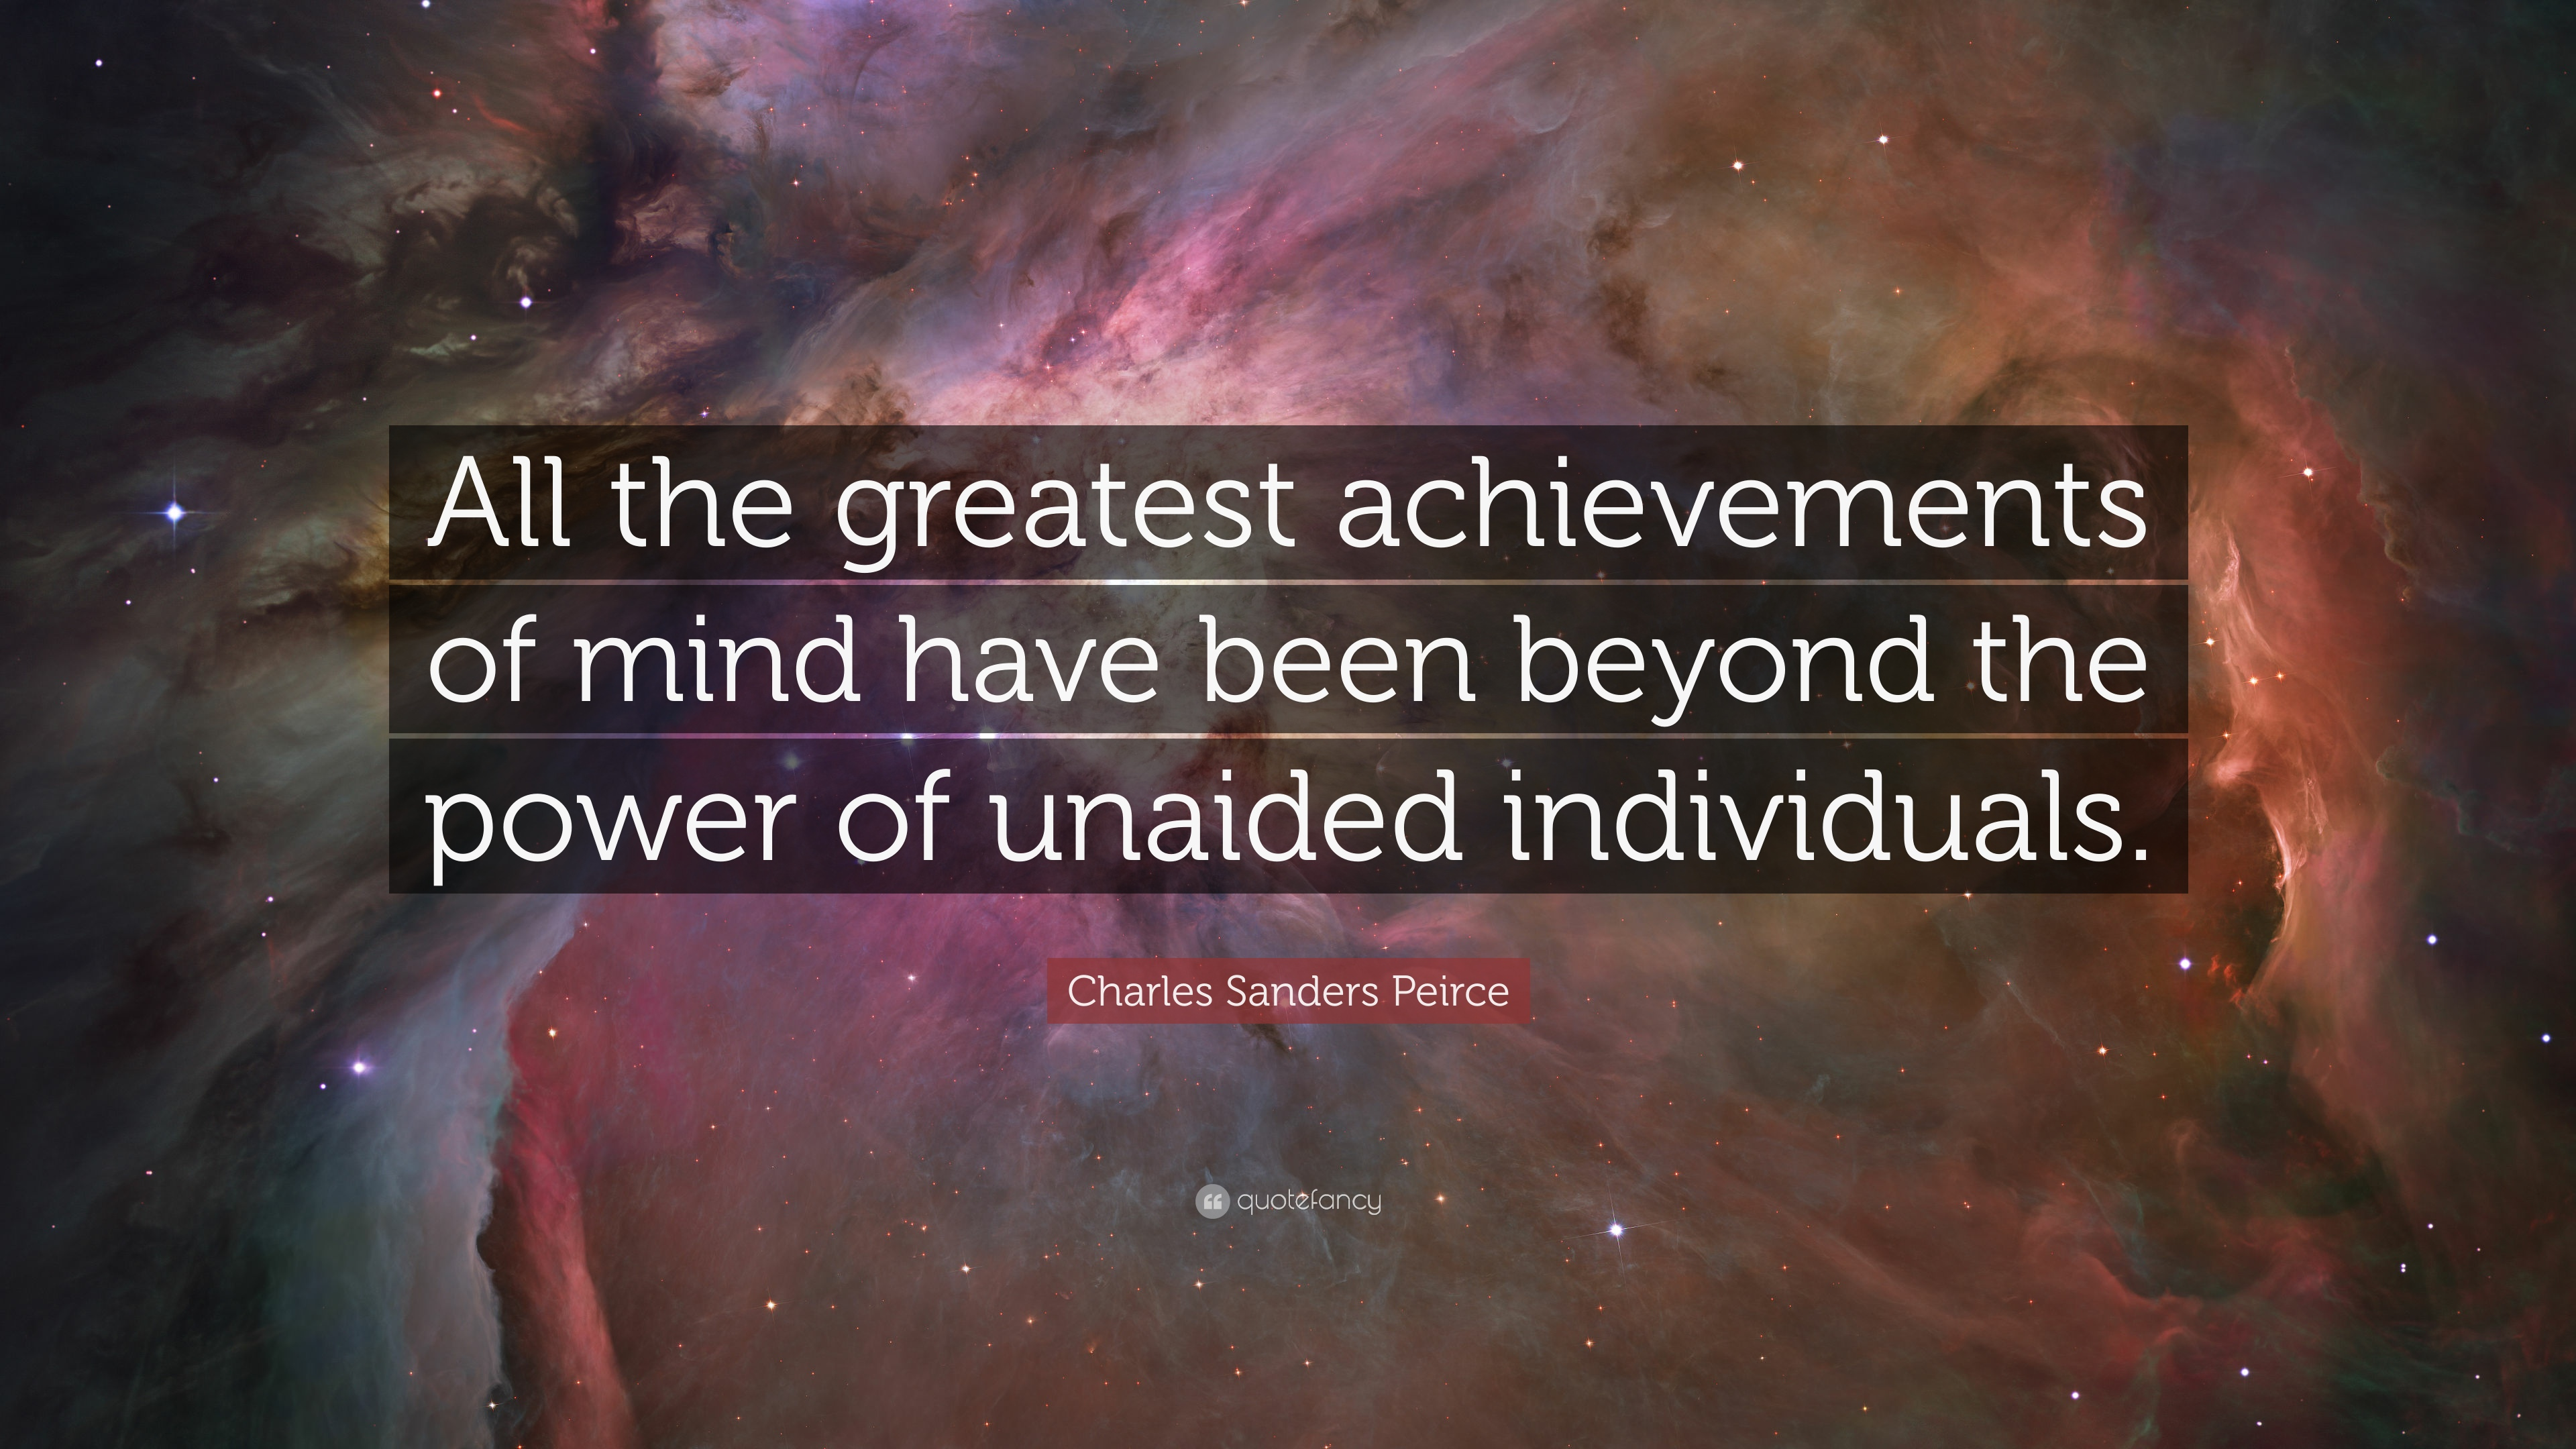 charles sanders peirce quote all the greatest achievements of charles sanders peirce quote all the greatest achievements of mind have been beyond the